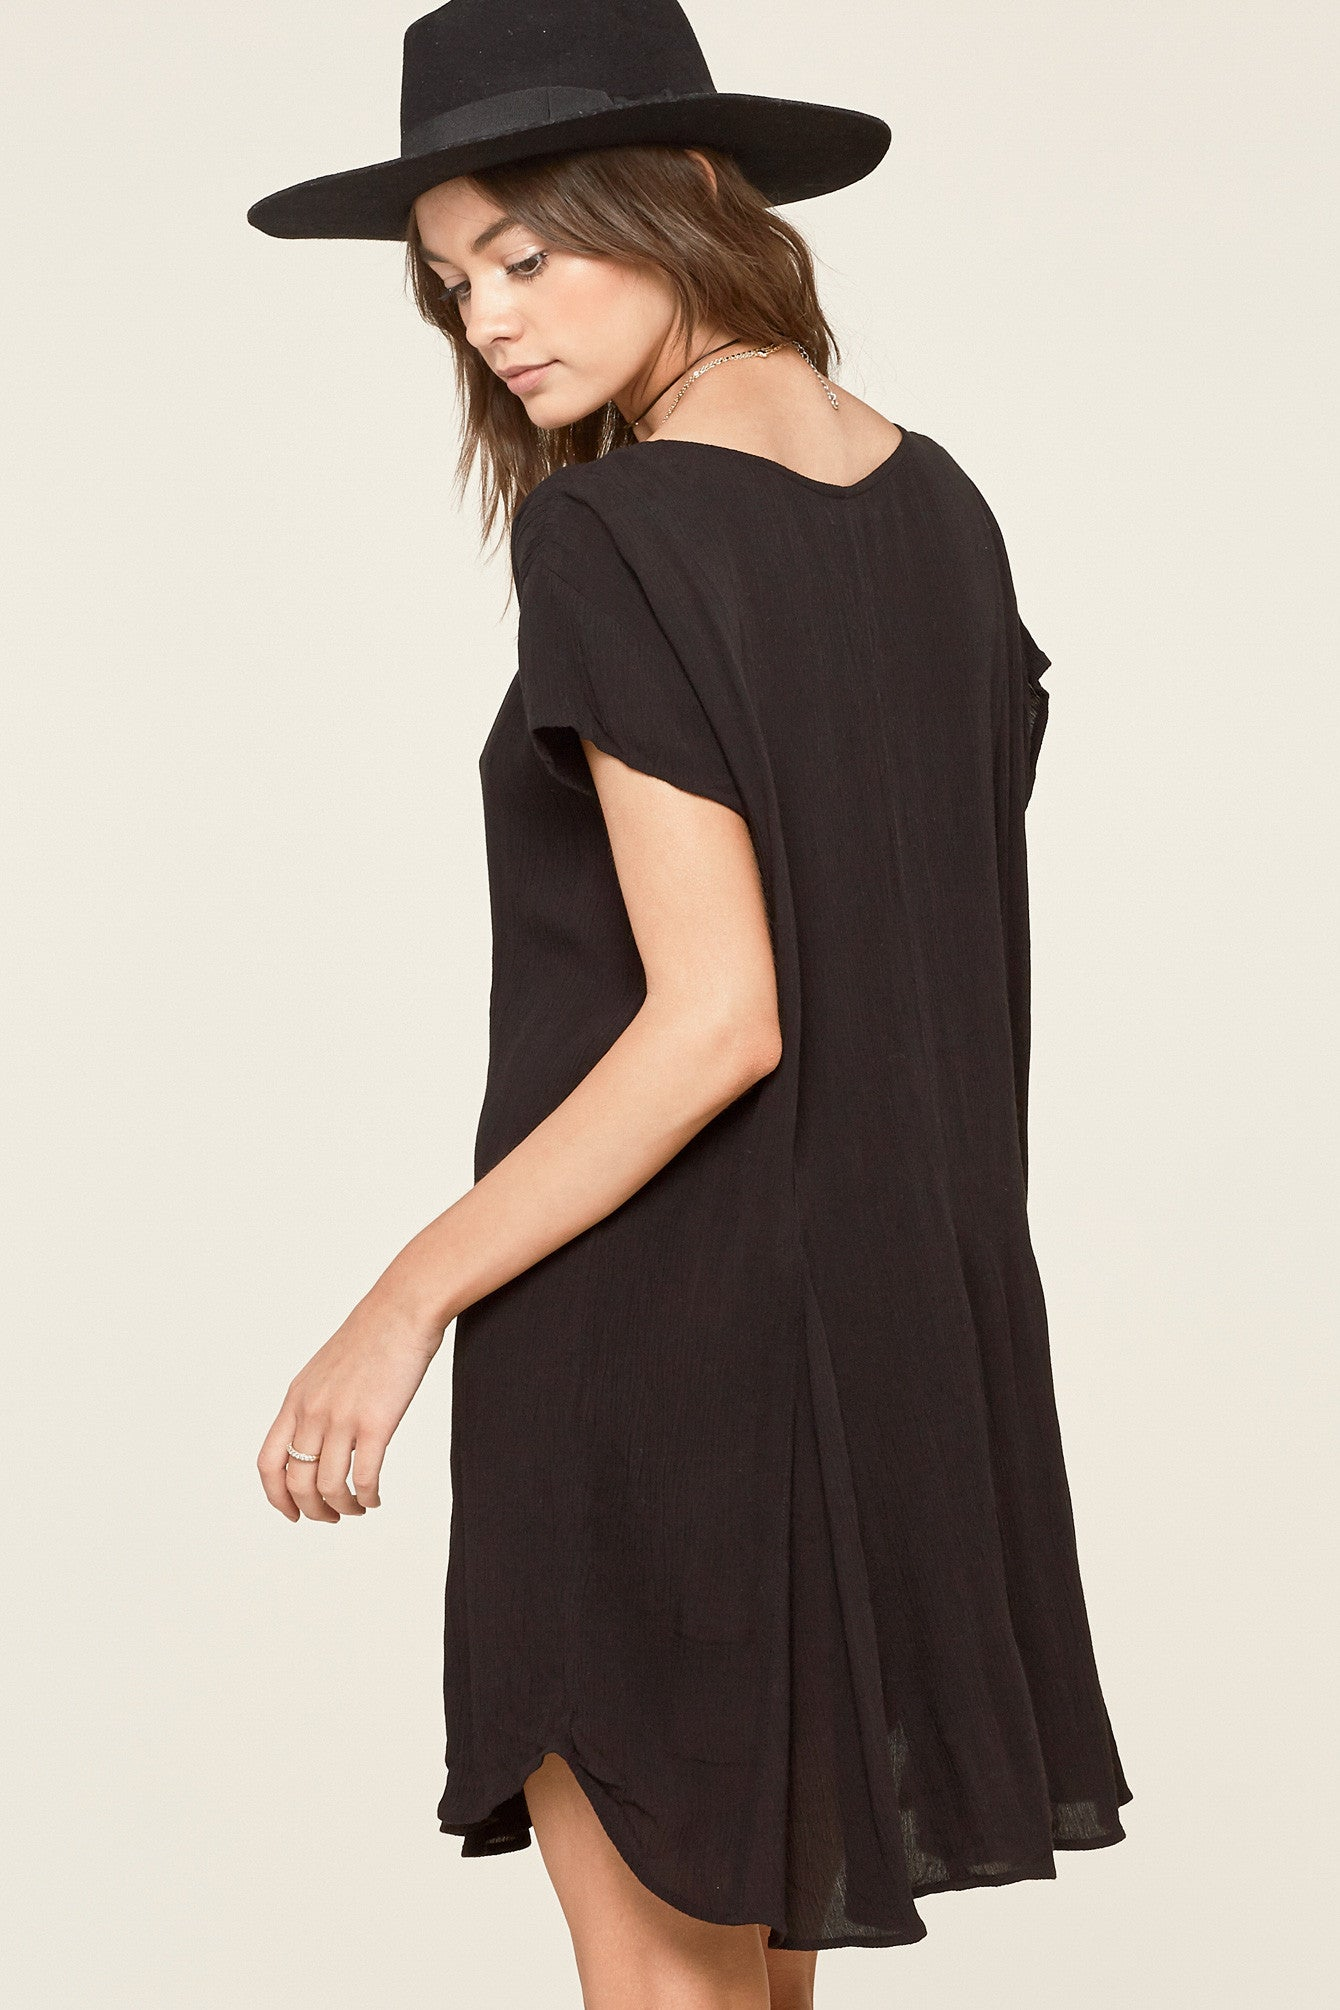 [shop name], wilcox dress